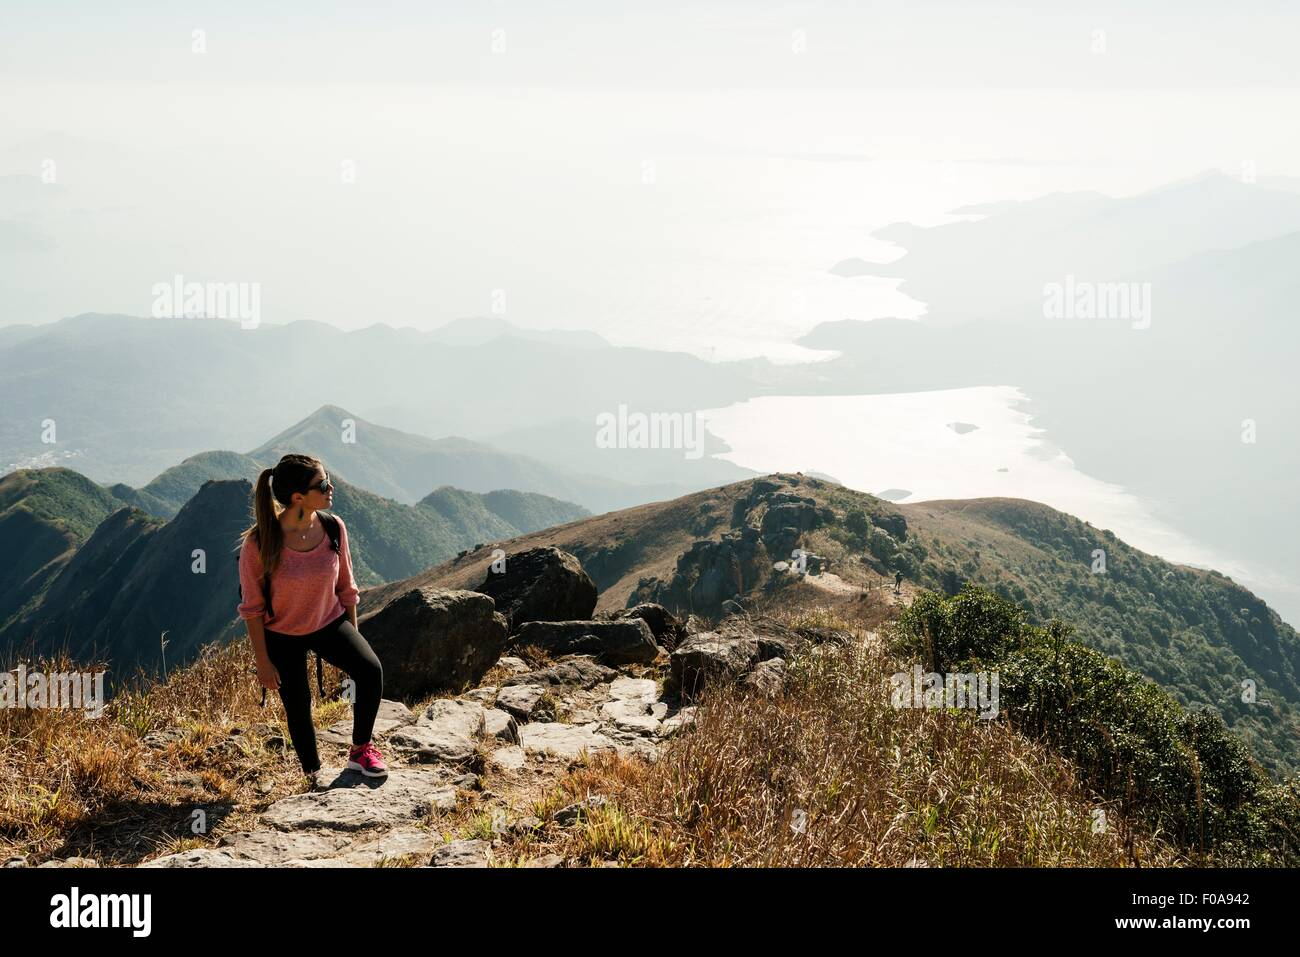 Young woman hiker on Lantau Peak looking away, Lantau Island, Hong Kong, China - Stock Image